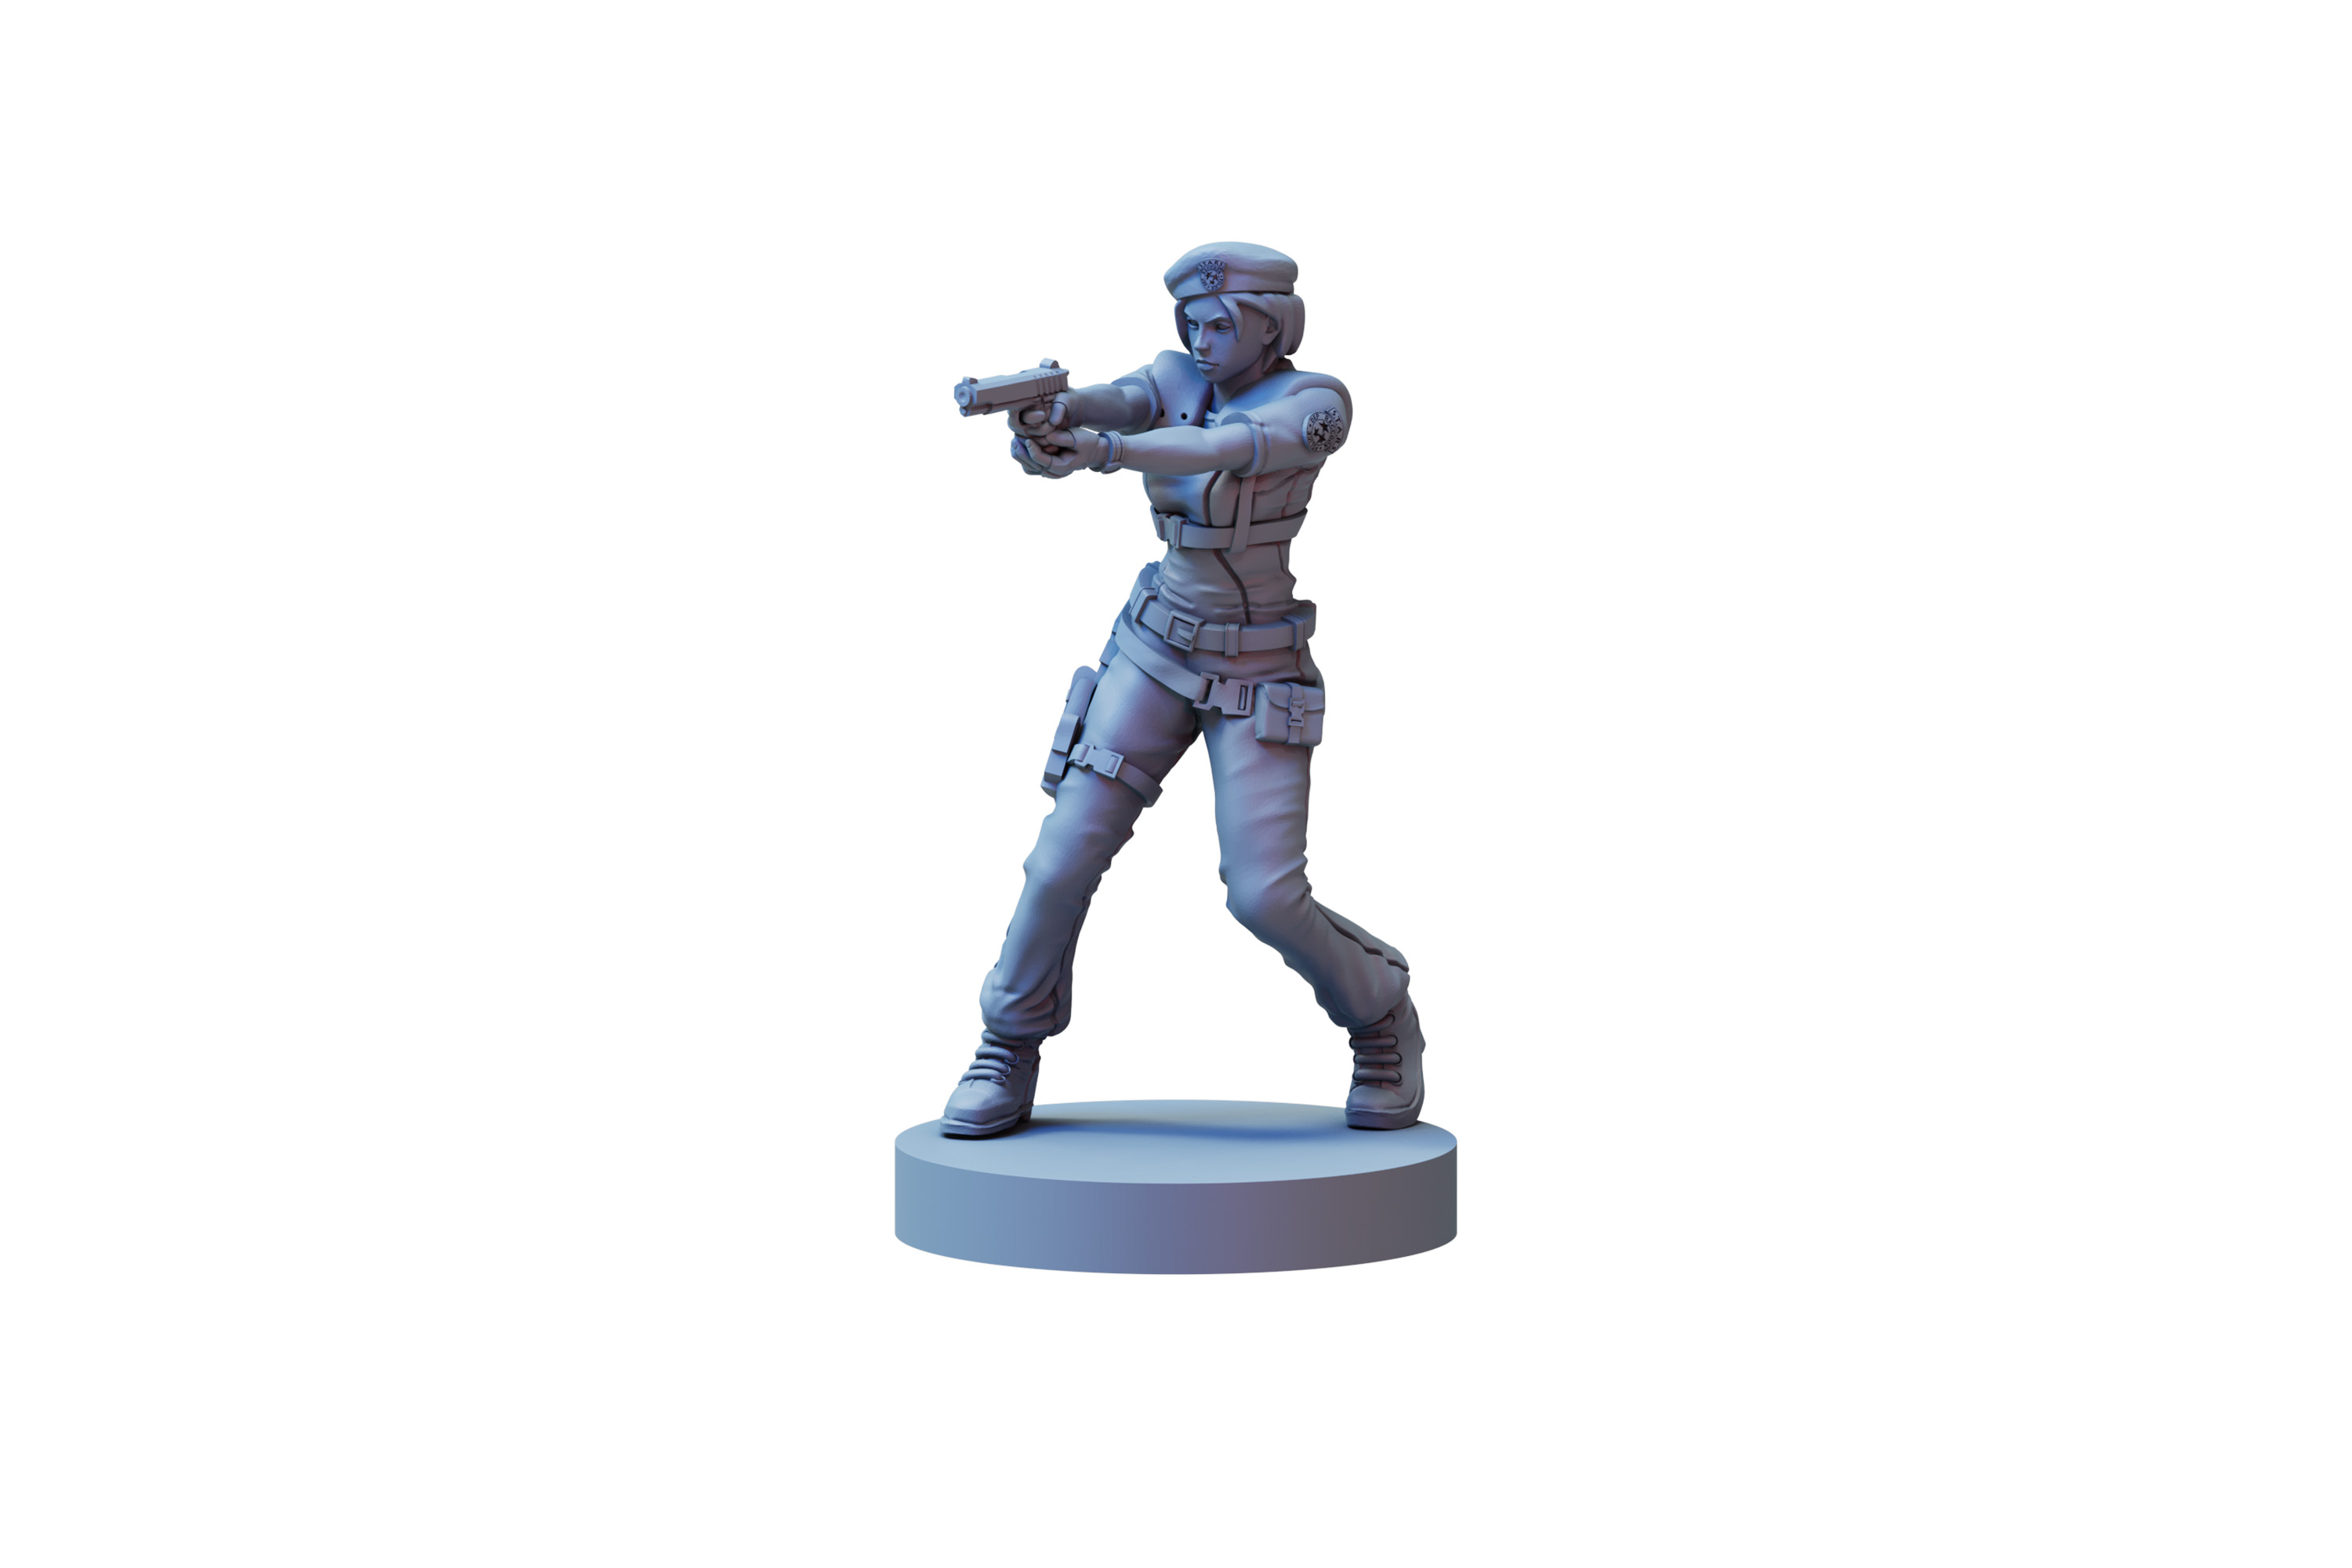 A female member of the STARS team holding a pistol.